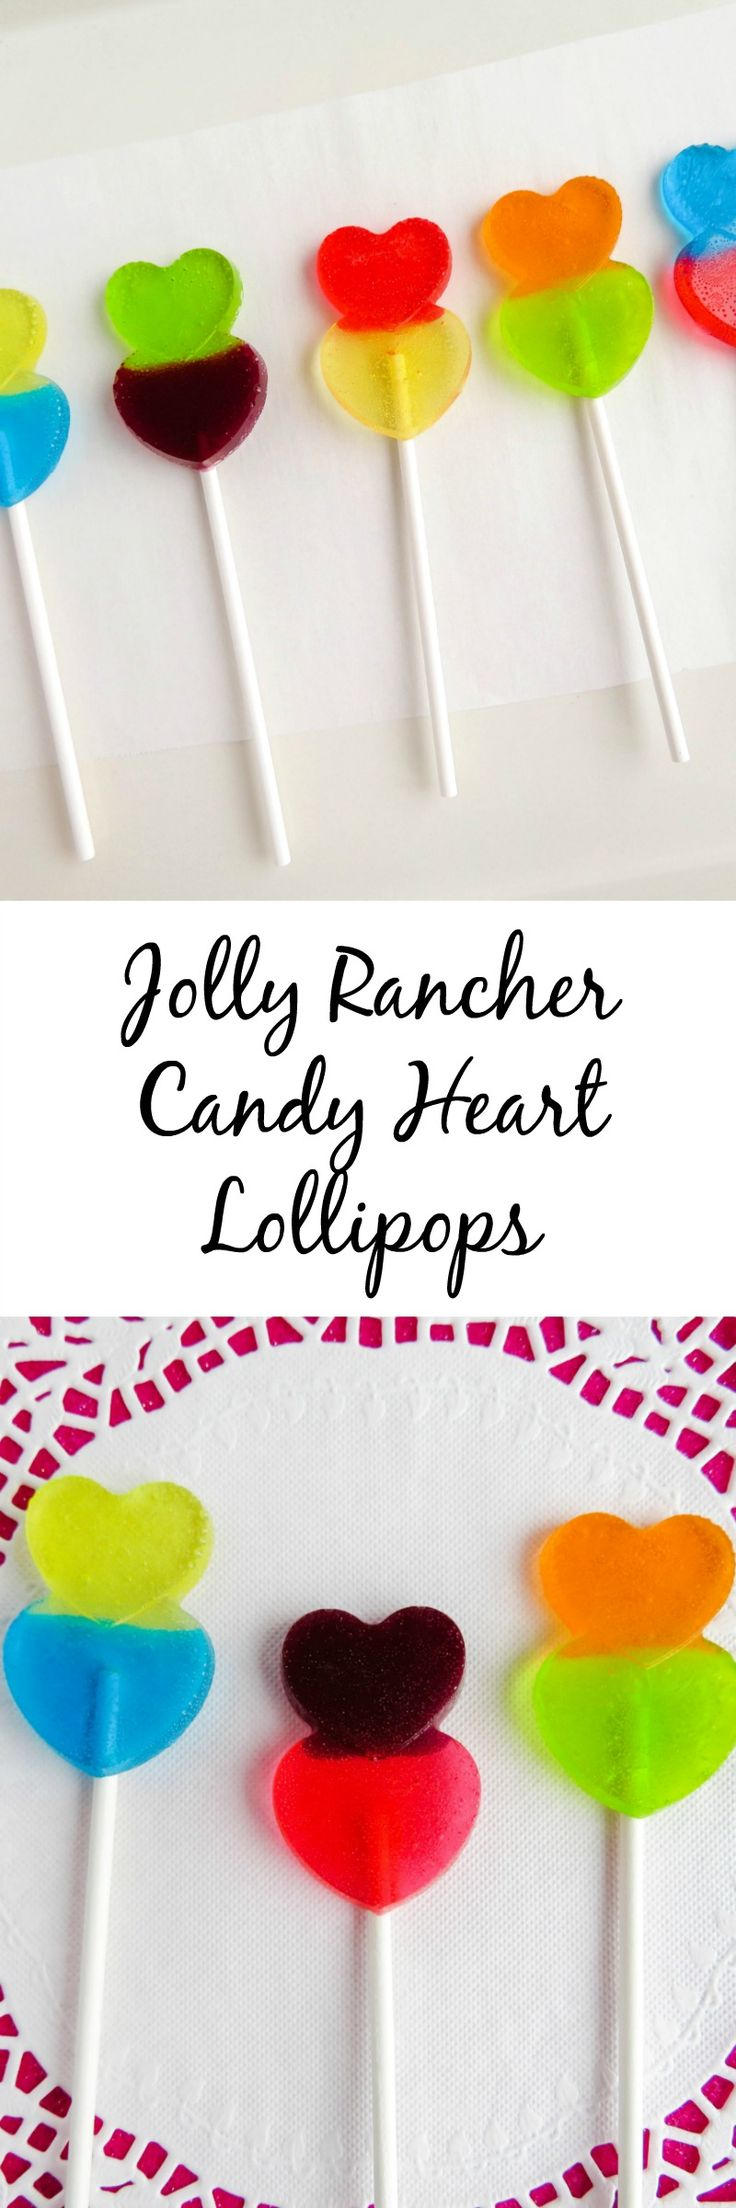 Jolly Rancher Candy Heart Lollipops--the perfect sweet treat!